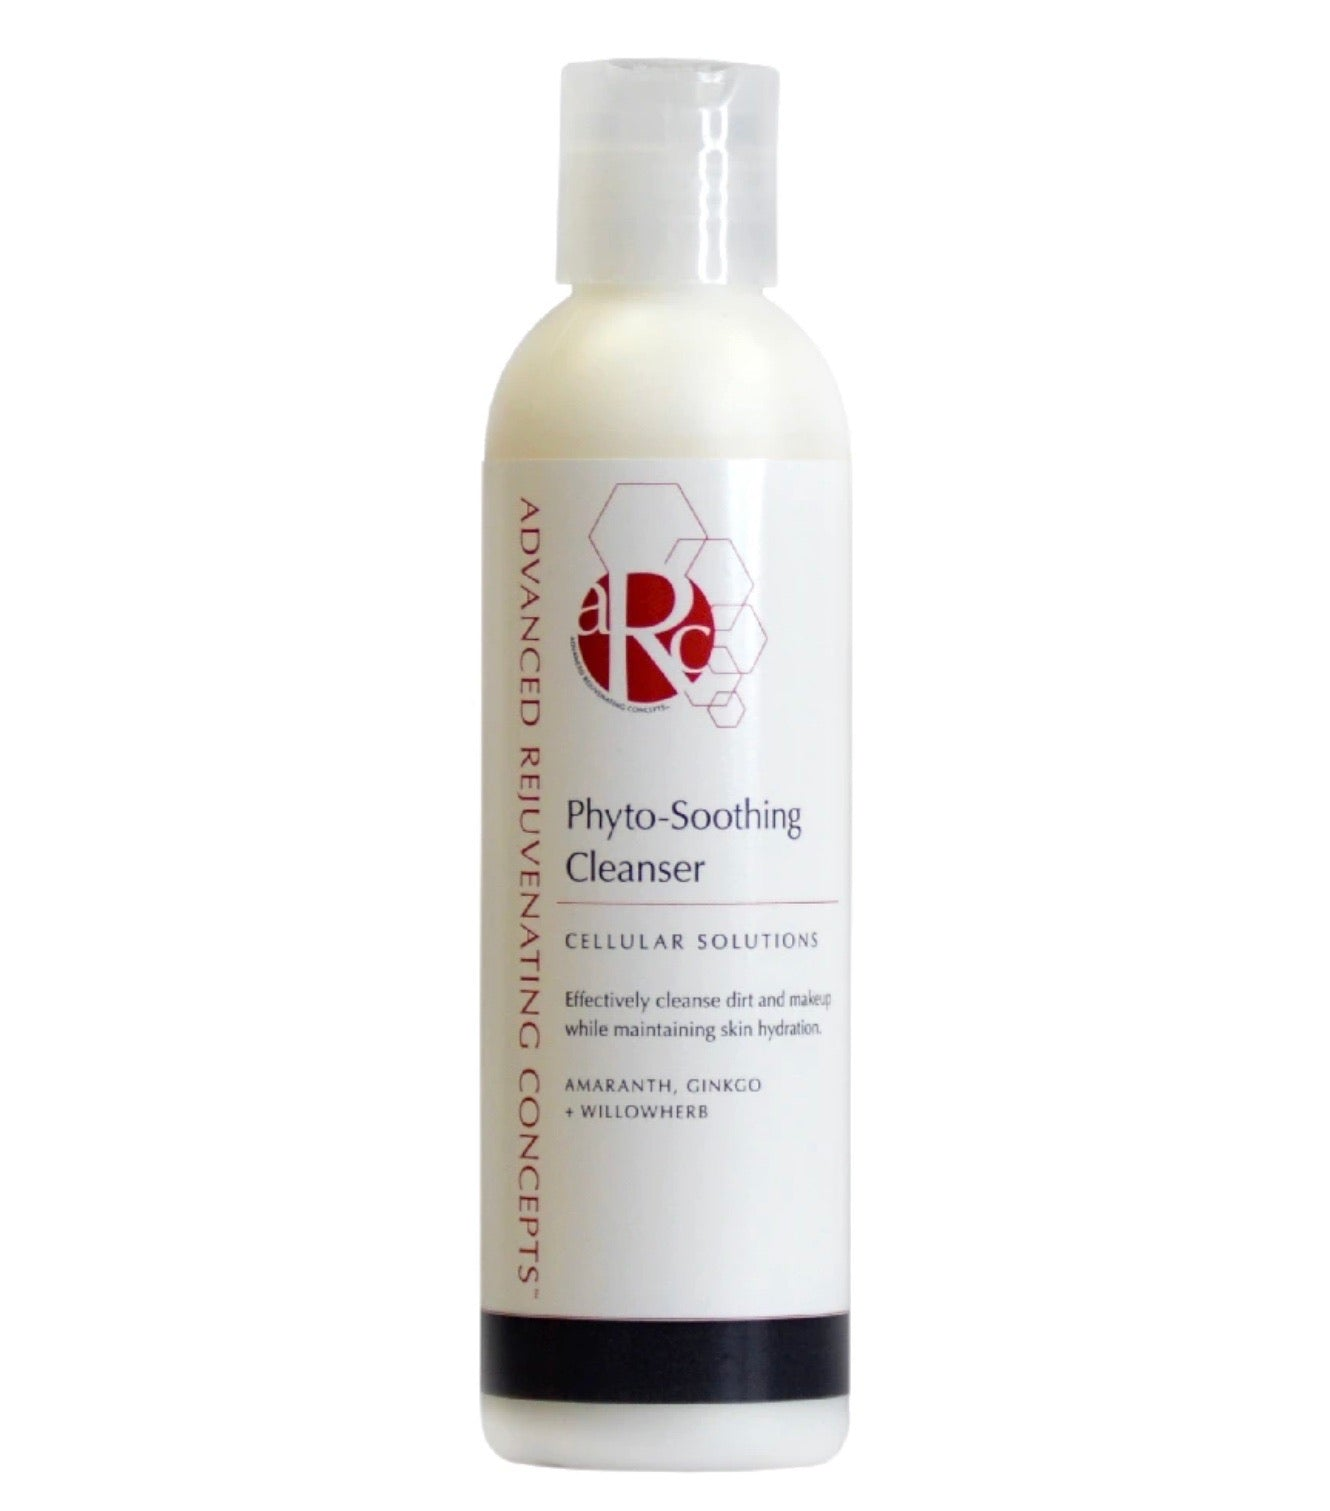 Phyto-Soothing Cleanser